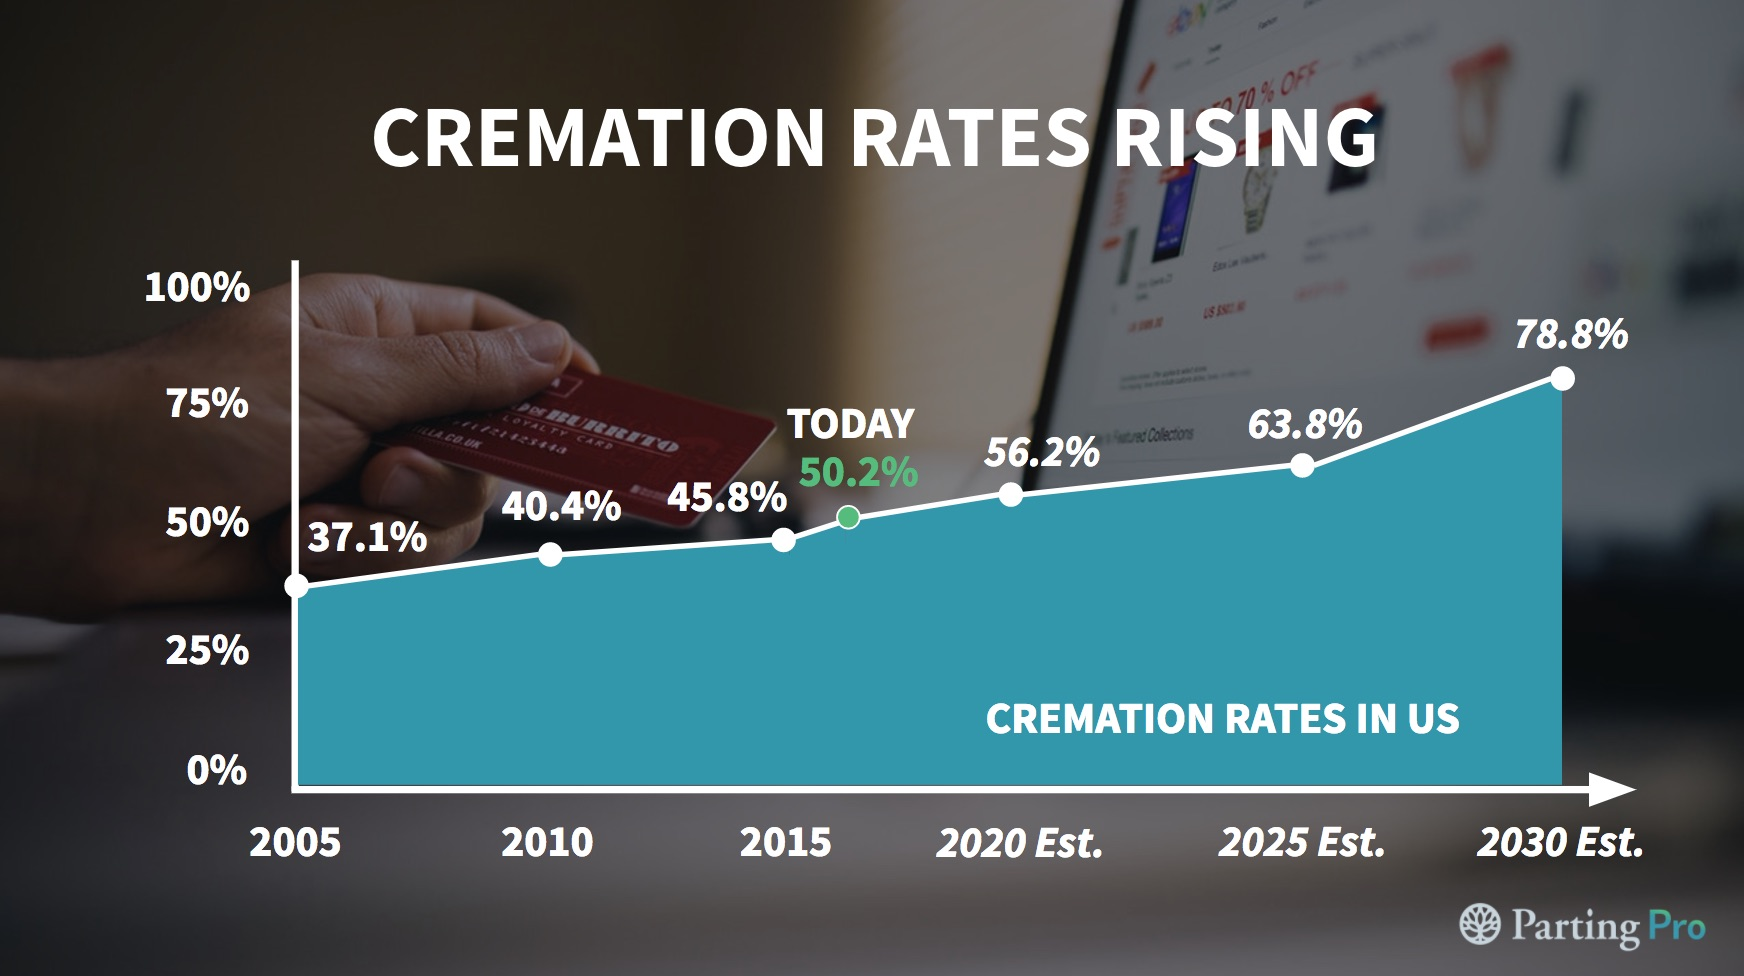 Winter is Coming - 5 - Cremation Rates Rising